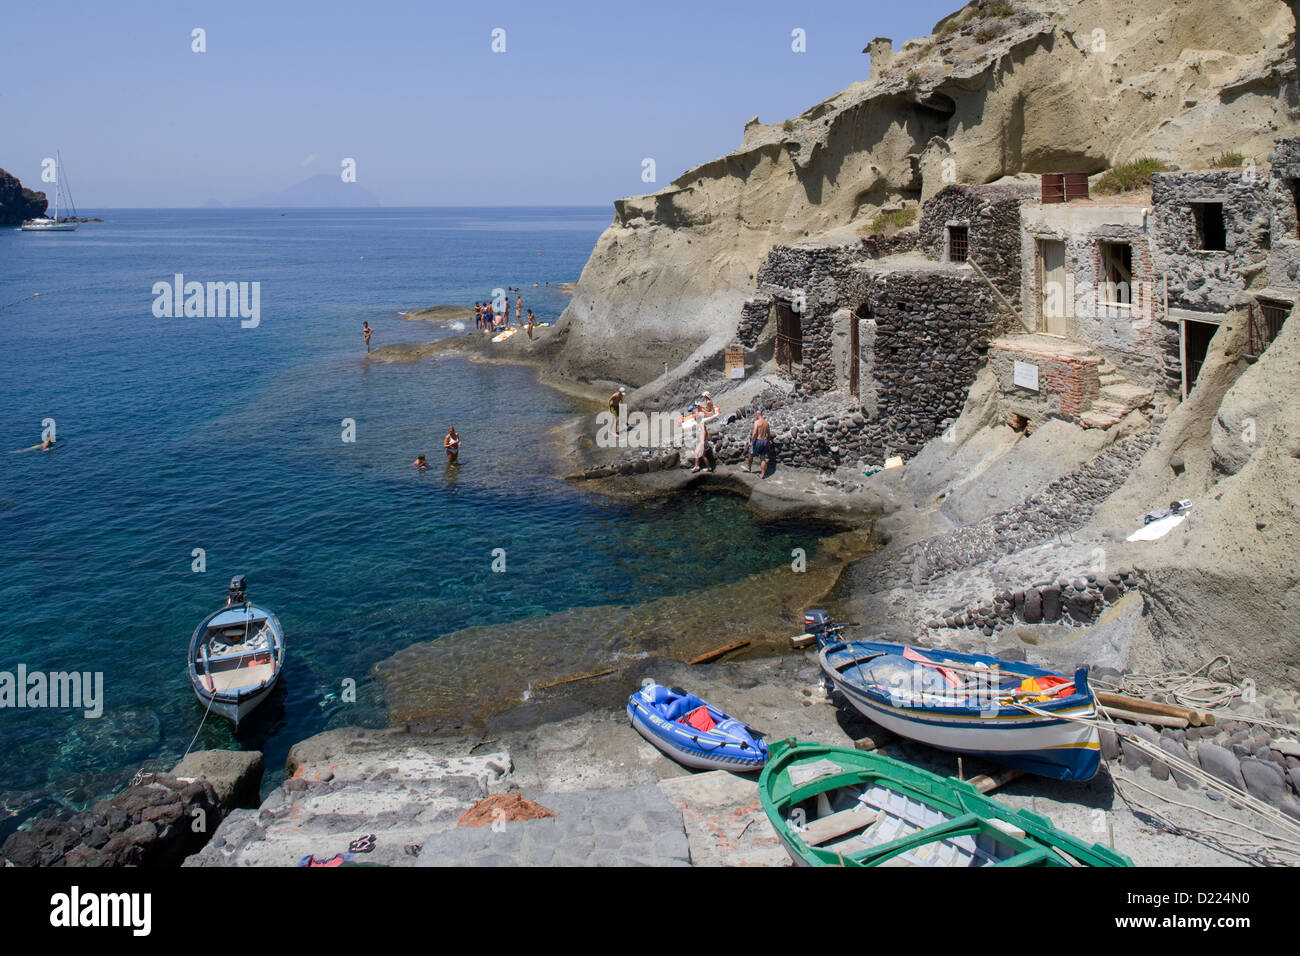 The Aeolian Islands: Salina - Pollara 'beach' - Stock Image